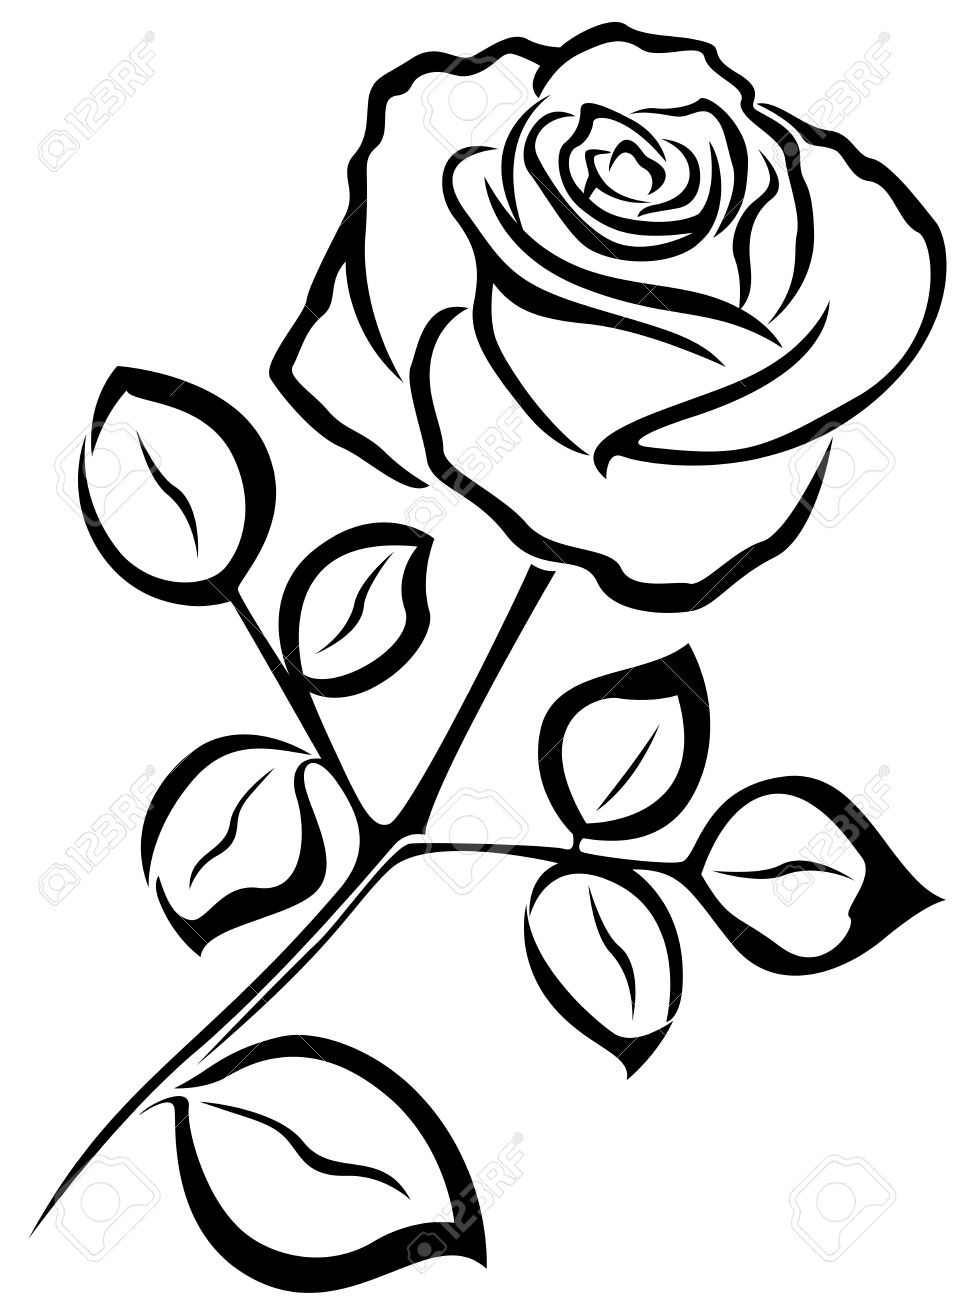 black vector outline of single rose flower isolated on a white rh 123rf com single rose black and white clipart red rose black and white clipart